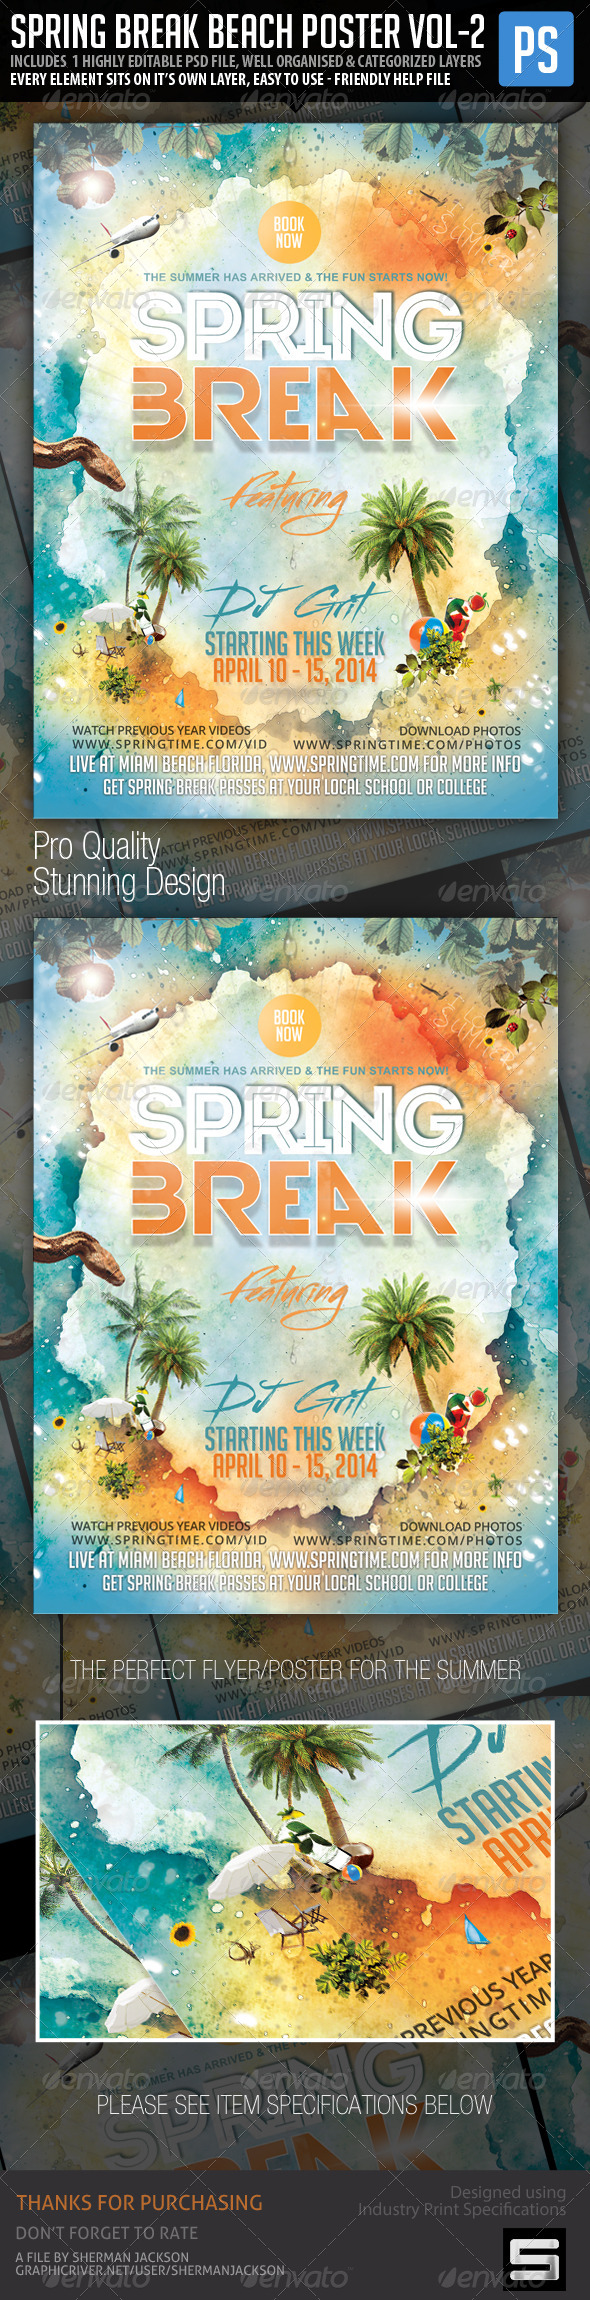 GraphicRiver Spring Break Beach Party Vol.2 Poster Flyer 7240244